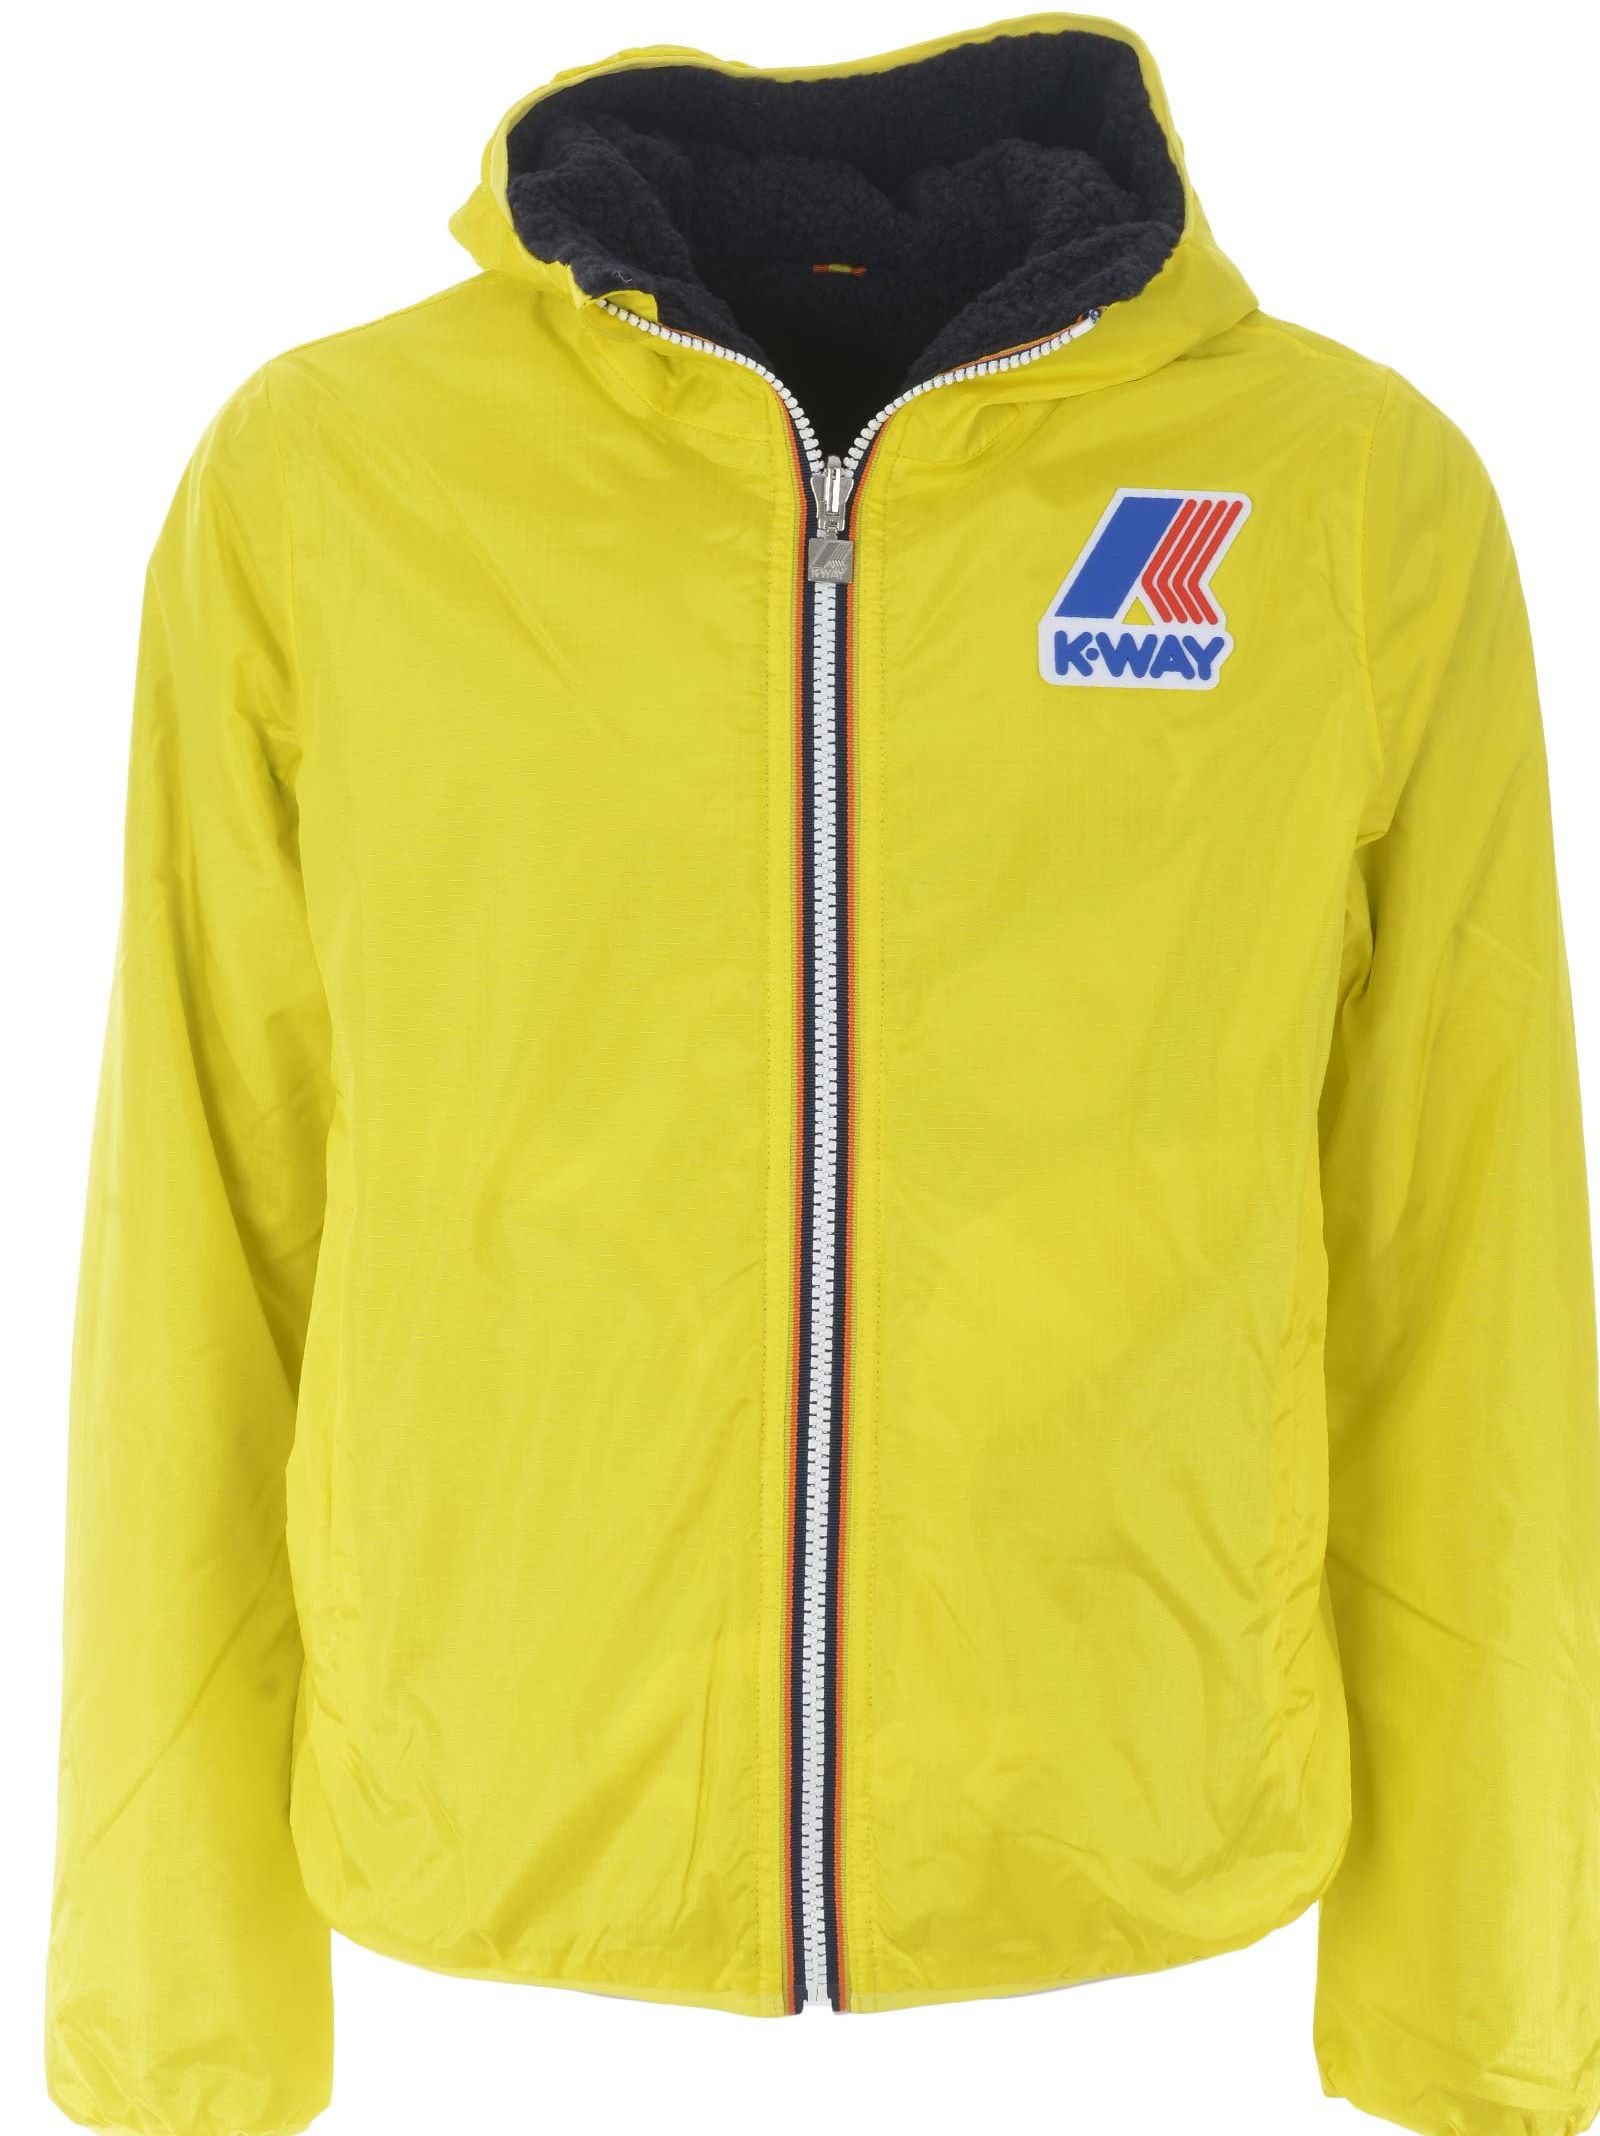 K-way Jaques Warm Hooded Jacket